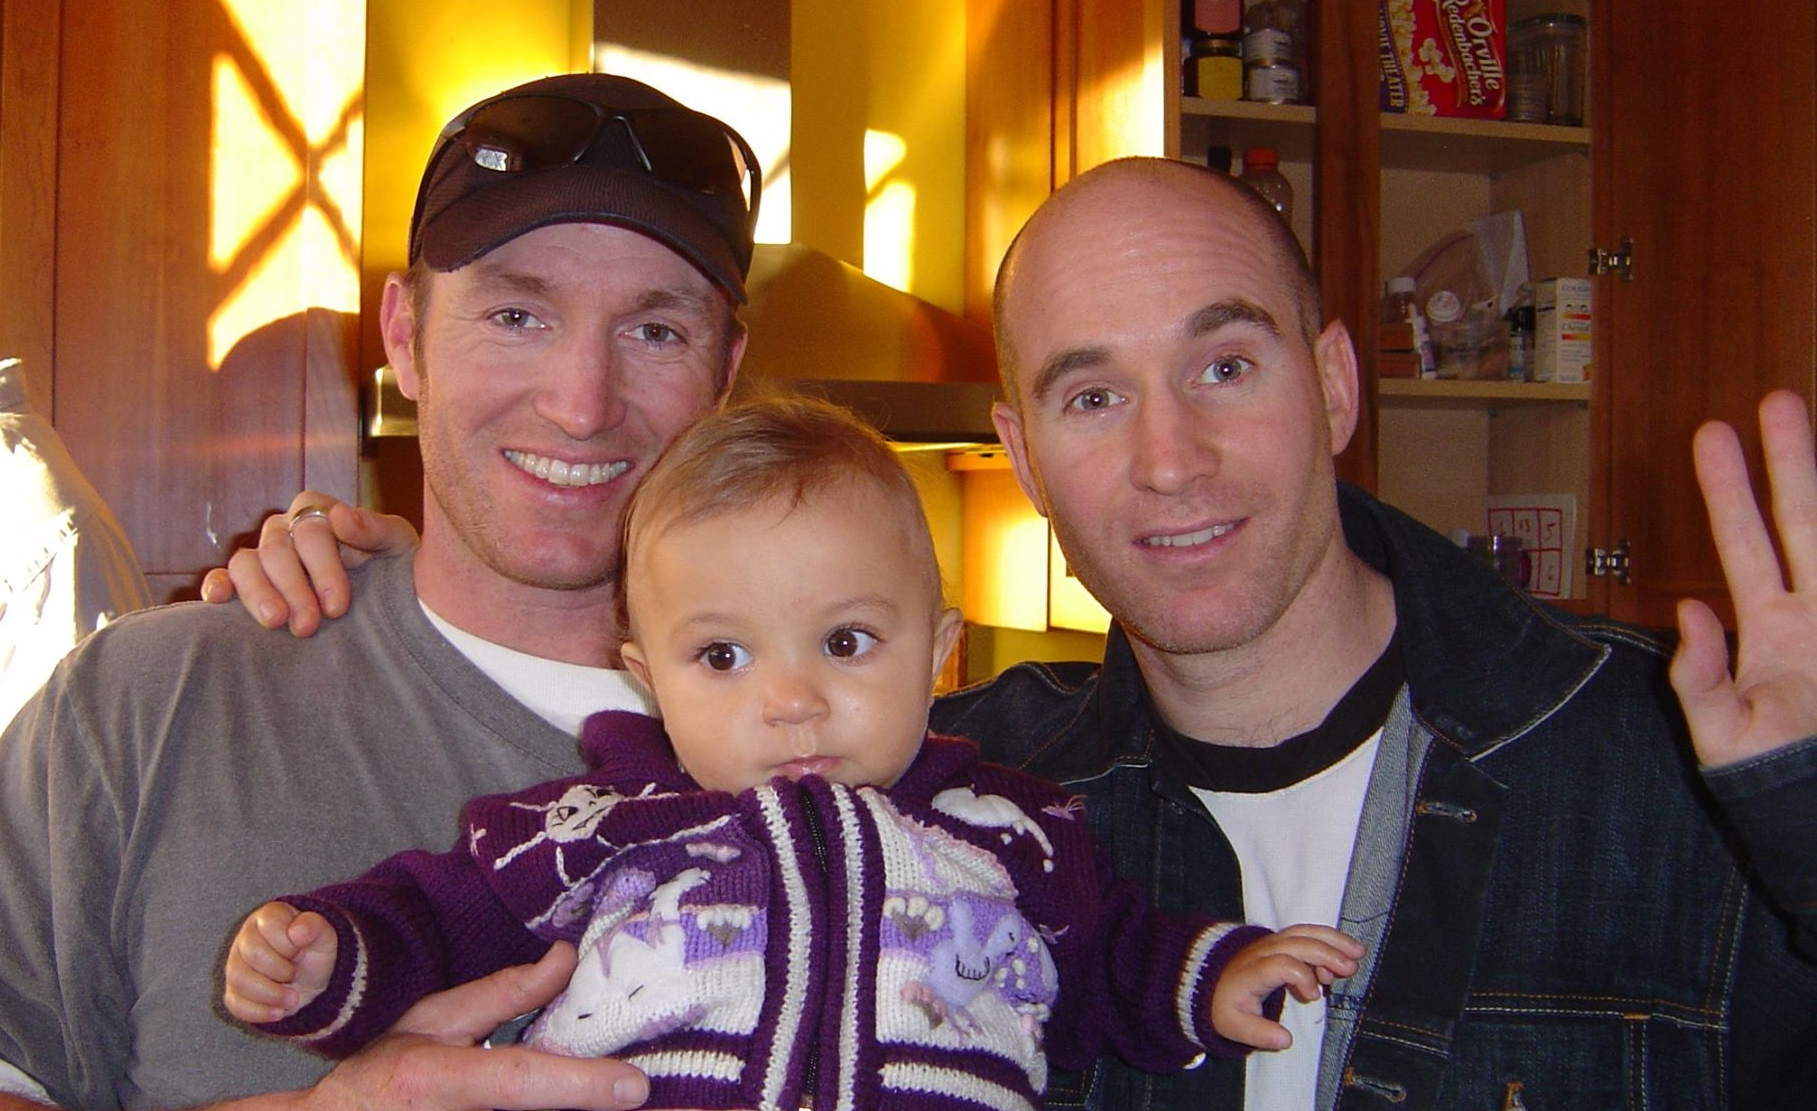 Glen Doherty, left, with Greg Doherty, right, and Greg's daughter Naomi in 2006. (Courtesy Greg Doherty)